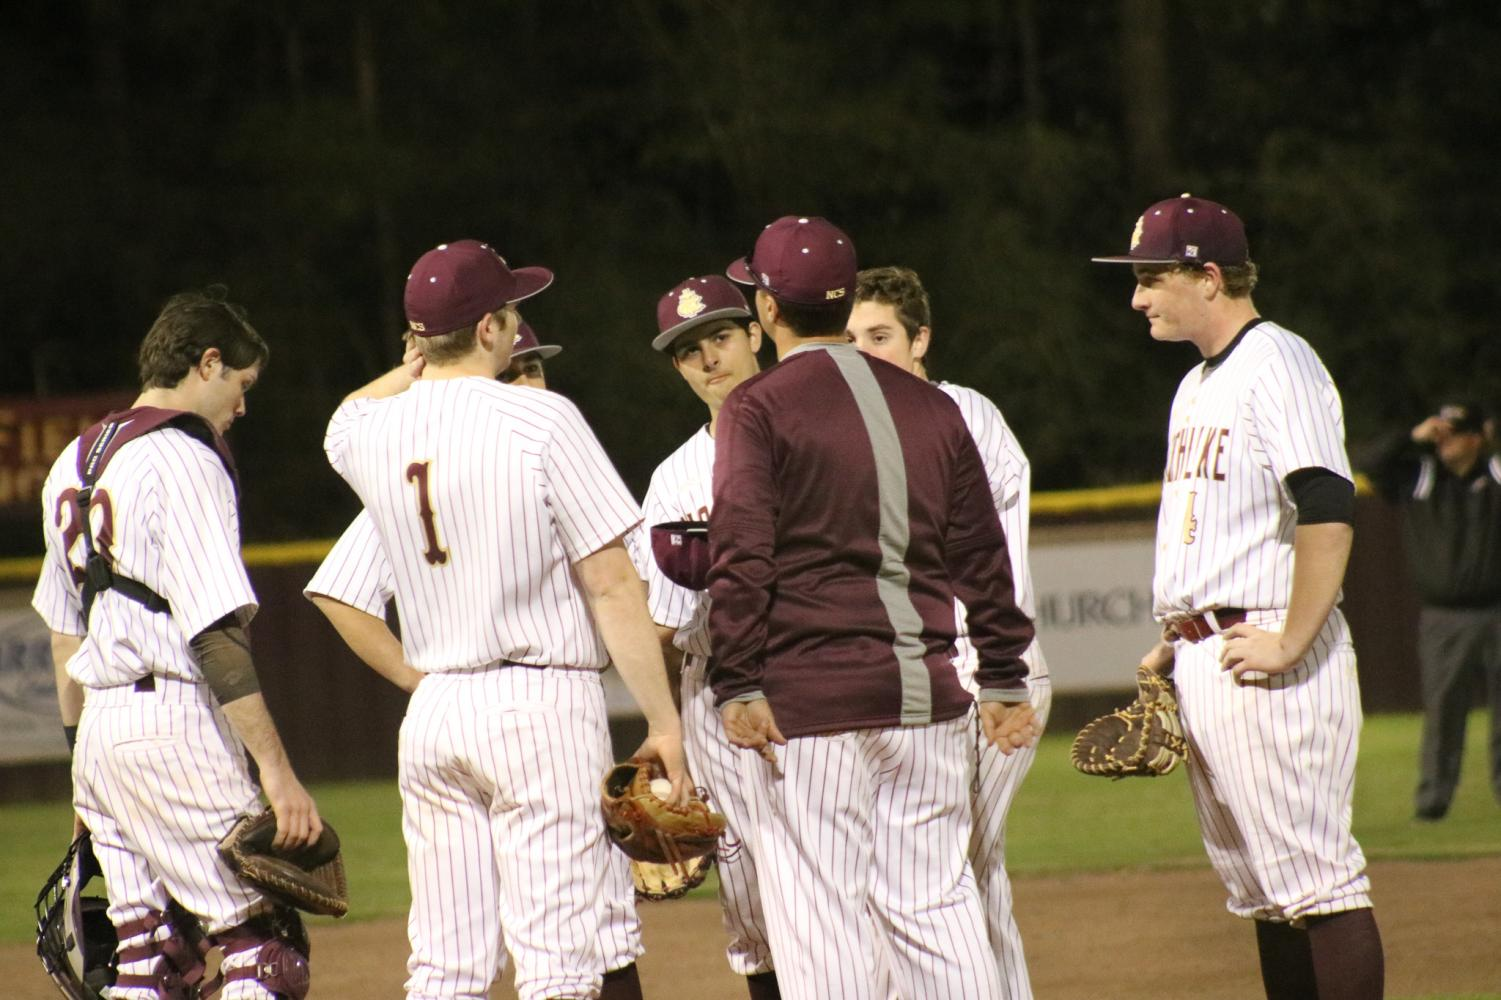 The Wolverine Baseball team gather around the mound mid-game to make adjustments with Coach Cam.